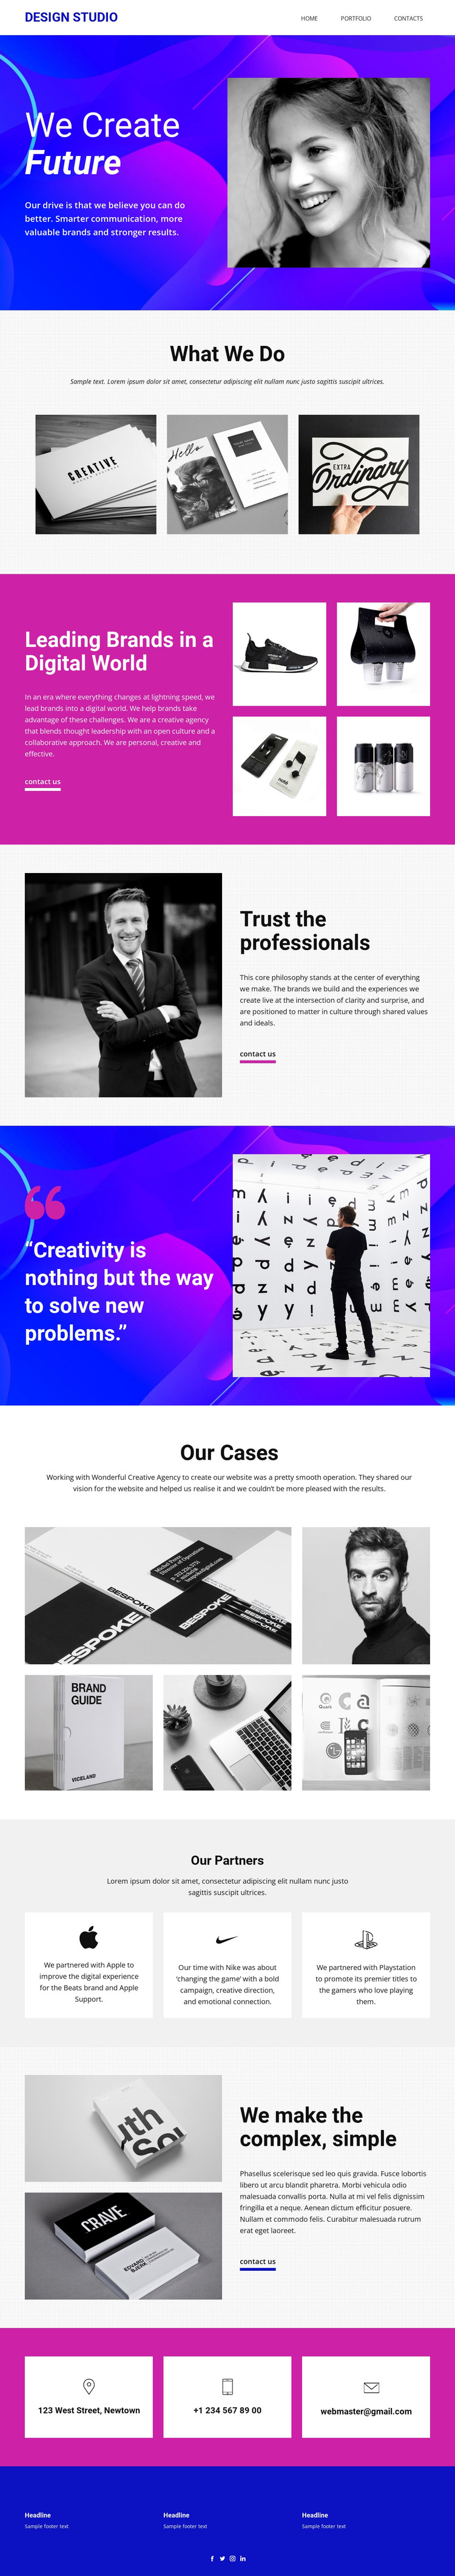 We develop the brand's core WordPress Theme